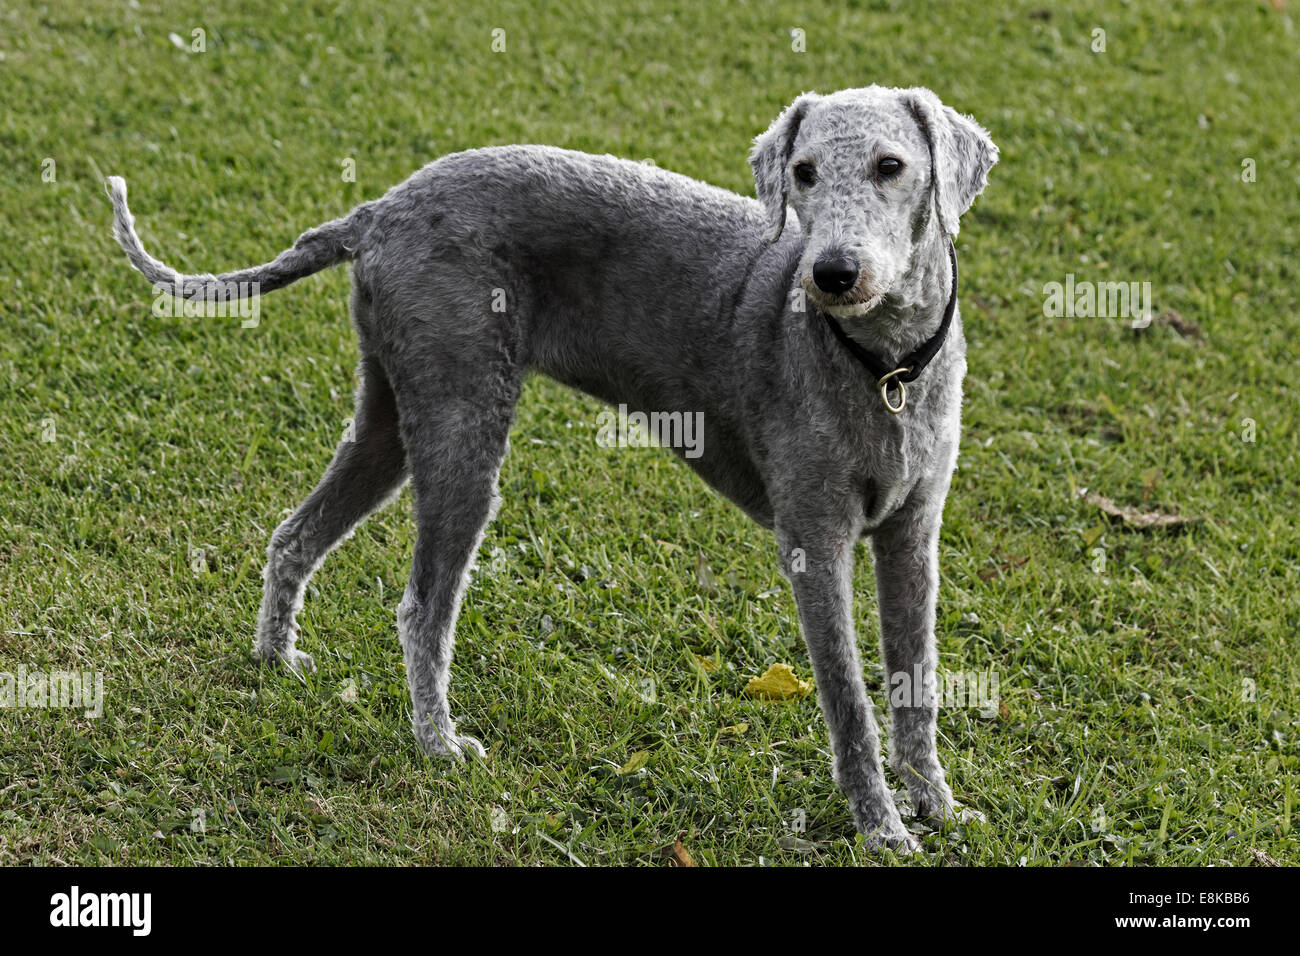 Bedlington terrier, recently clipped, standing in a field - Stock Image